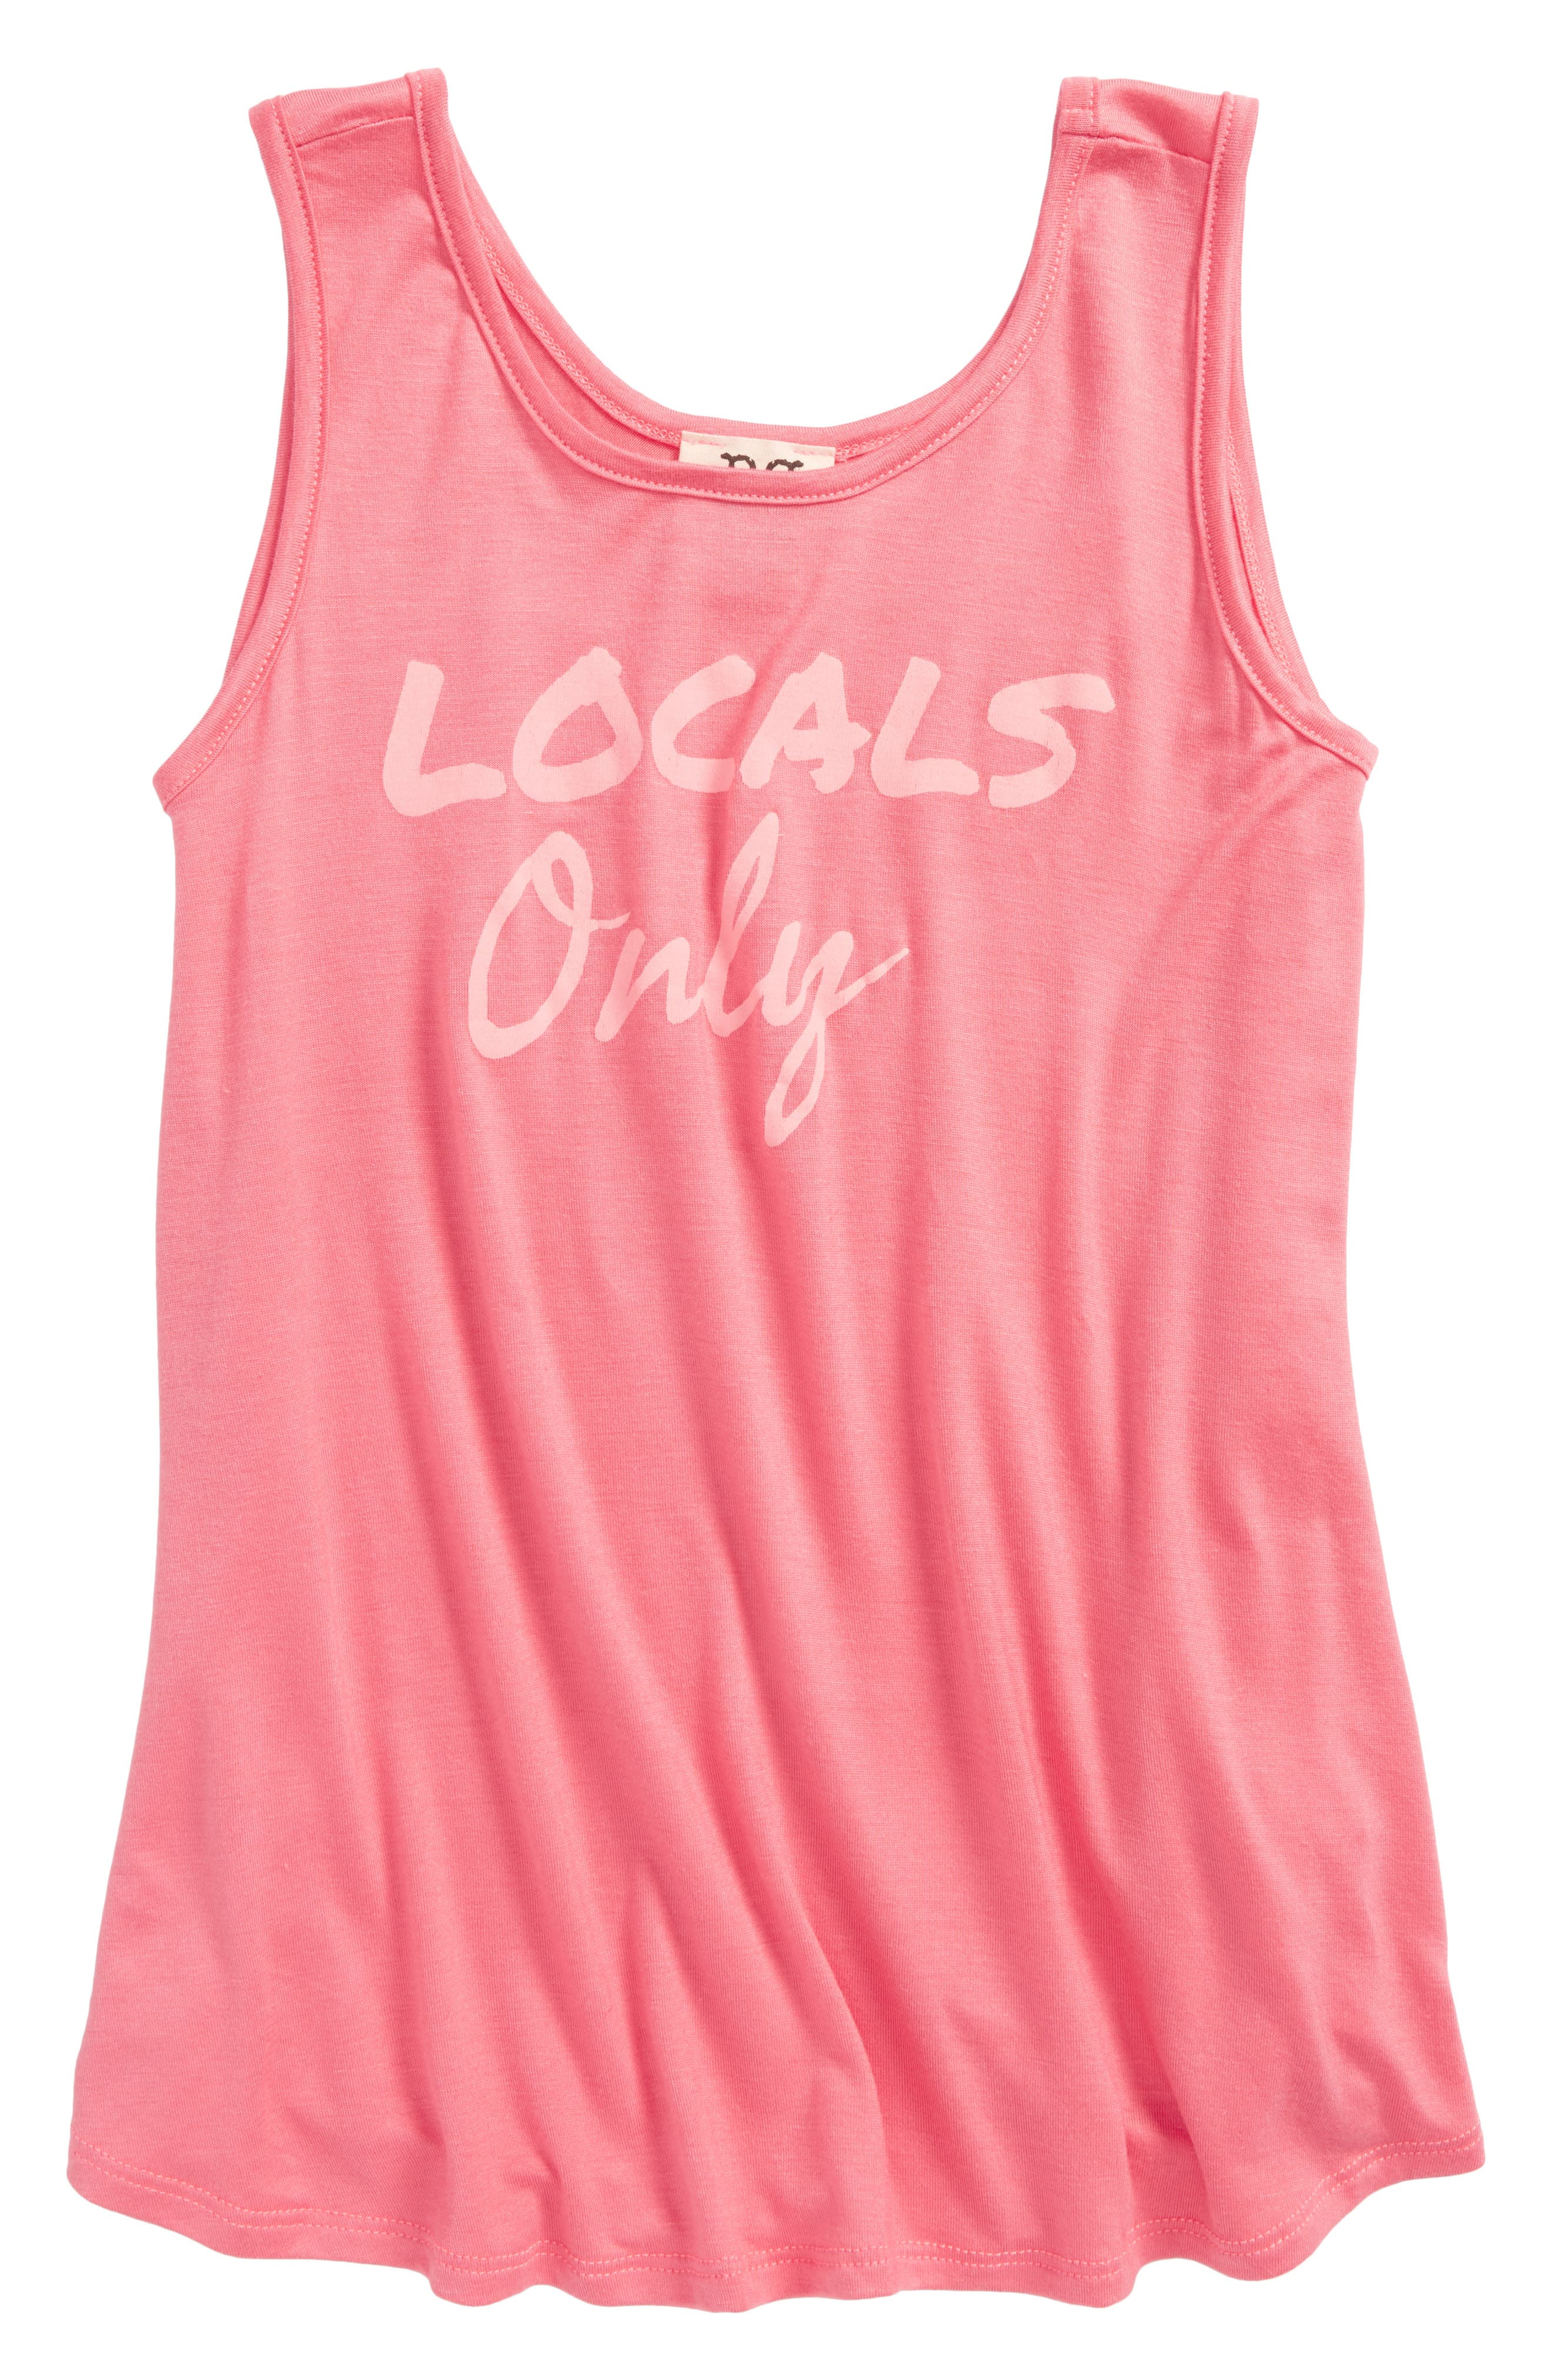 Locals Only Swing Tank,                         Main,                         color, Coral